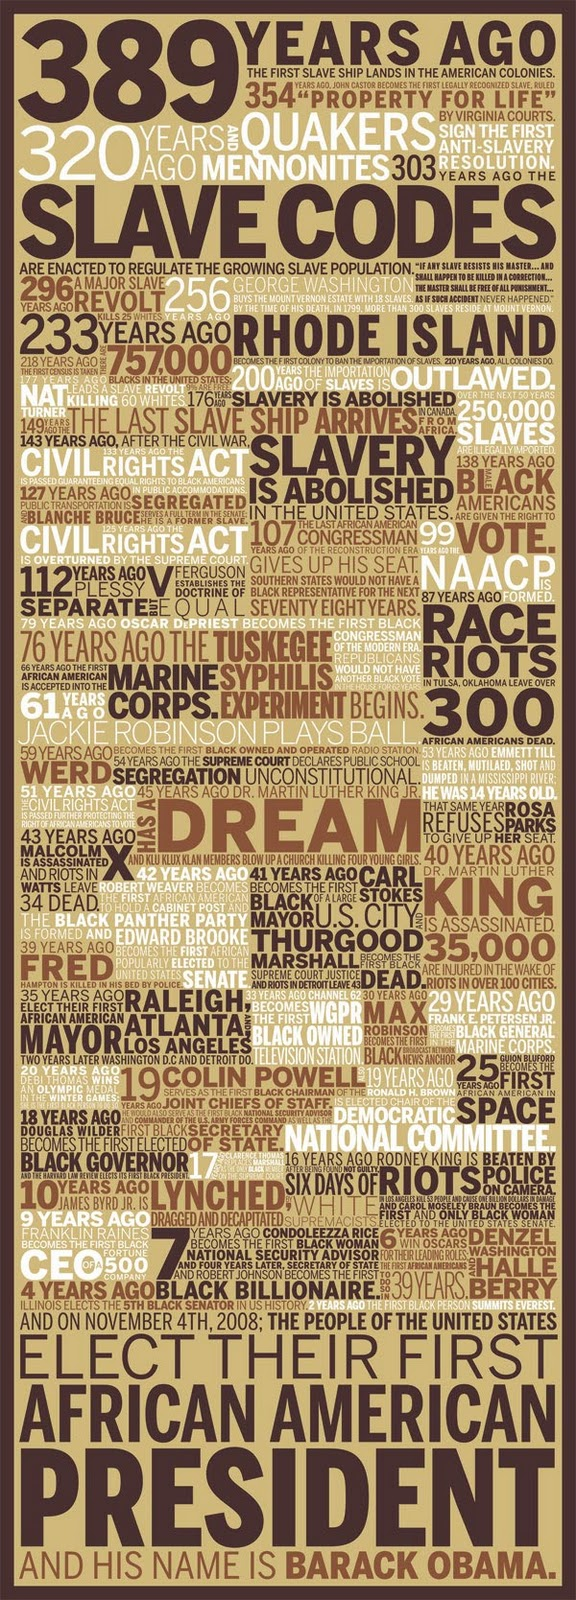 African American History Timeline - 1619 - 2008